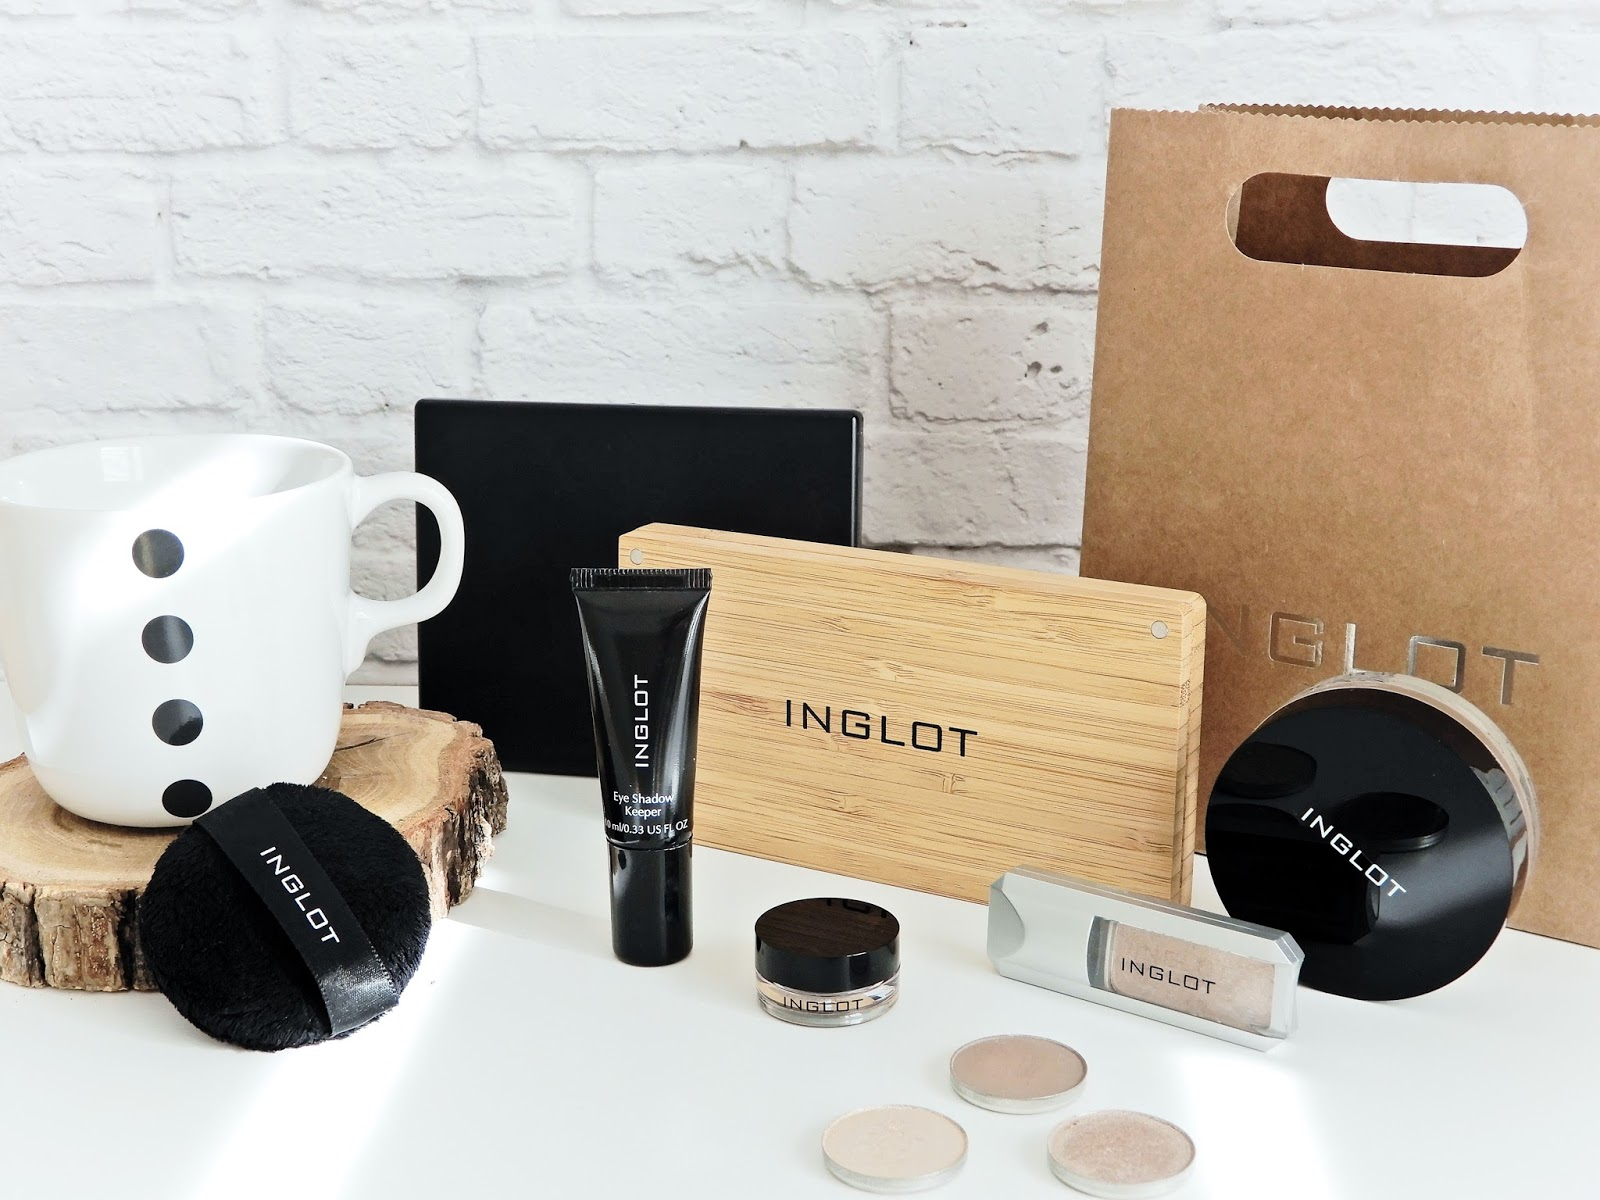 Pod Lupa Inglot Hellojza About Beauty